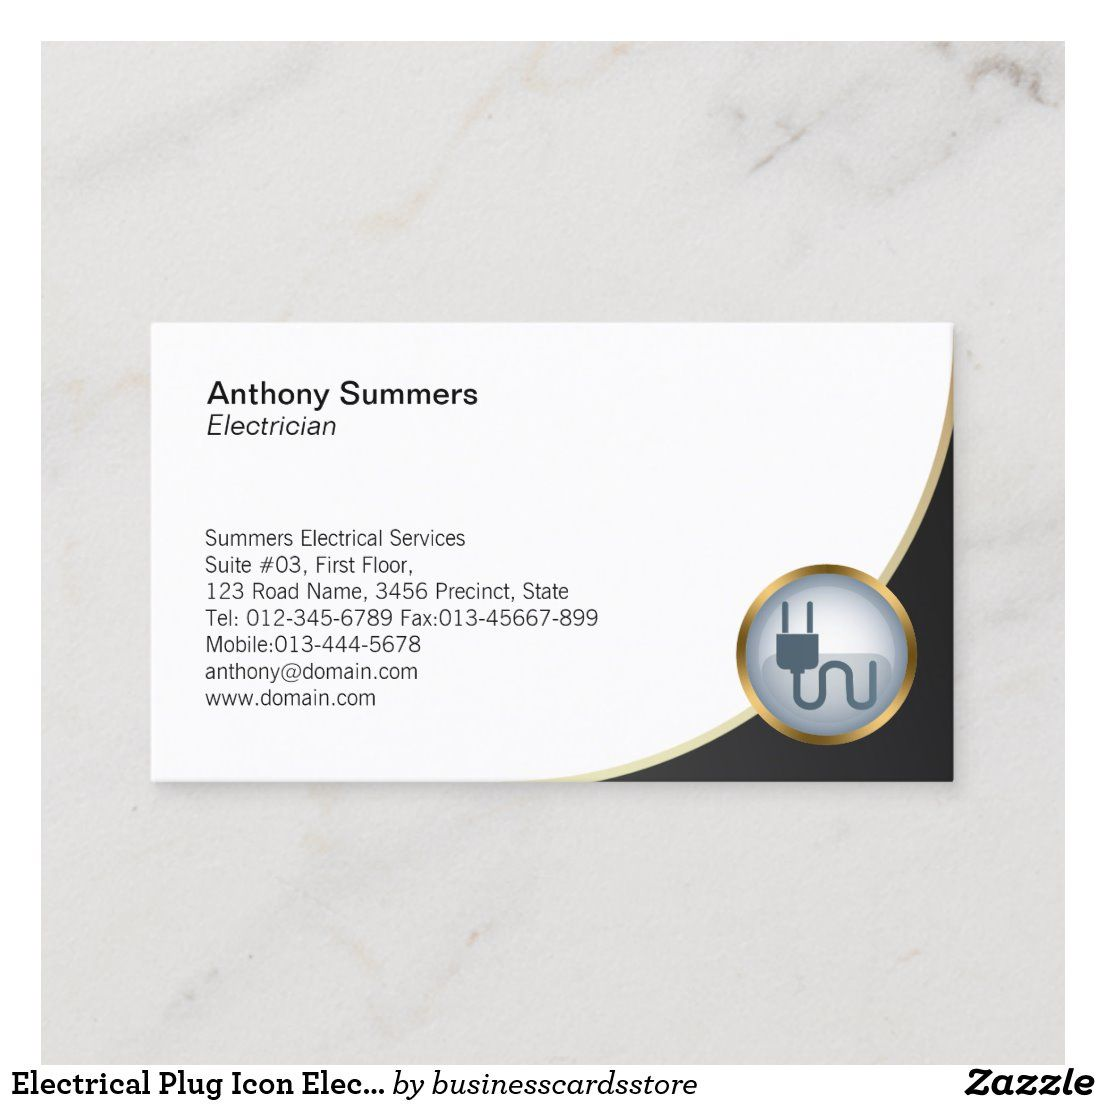 Electrical Plug Icon Electrician Business Card Zazzle Com In 2021 Electrician Electricity Plugs